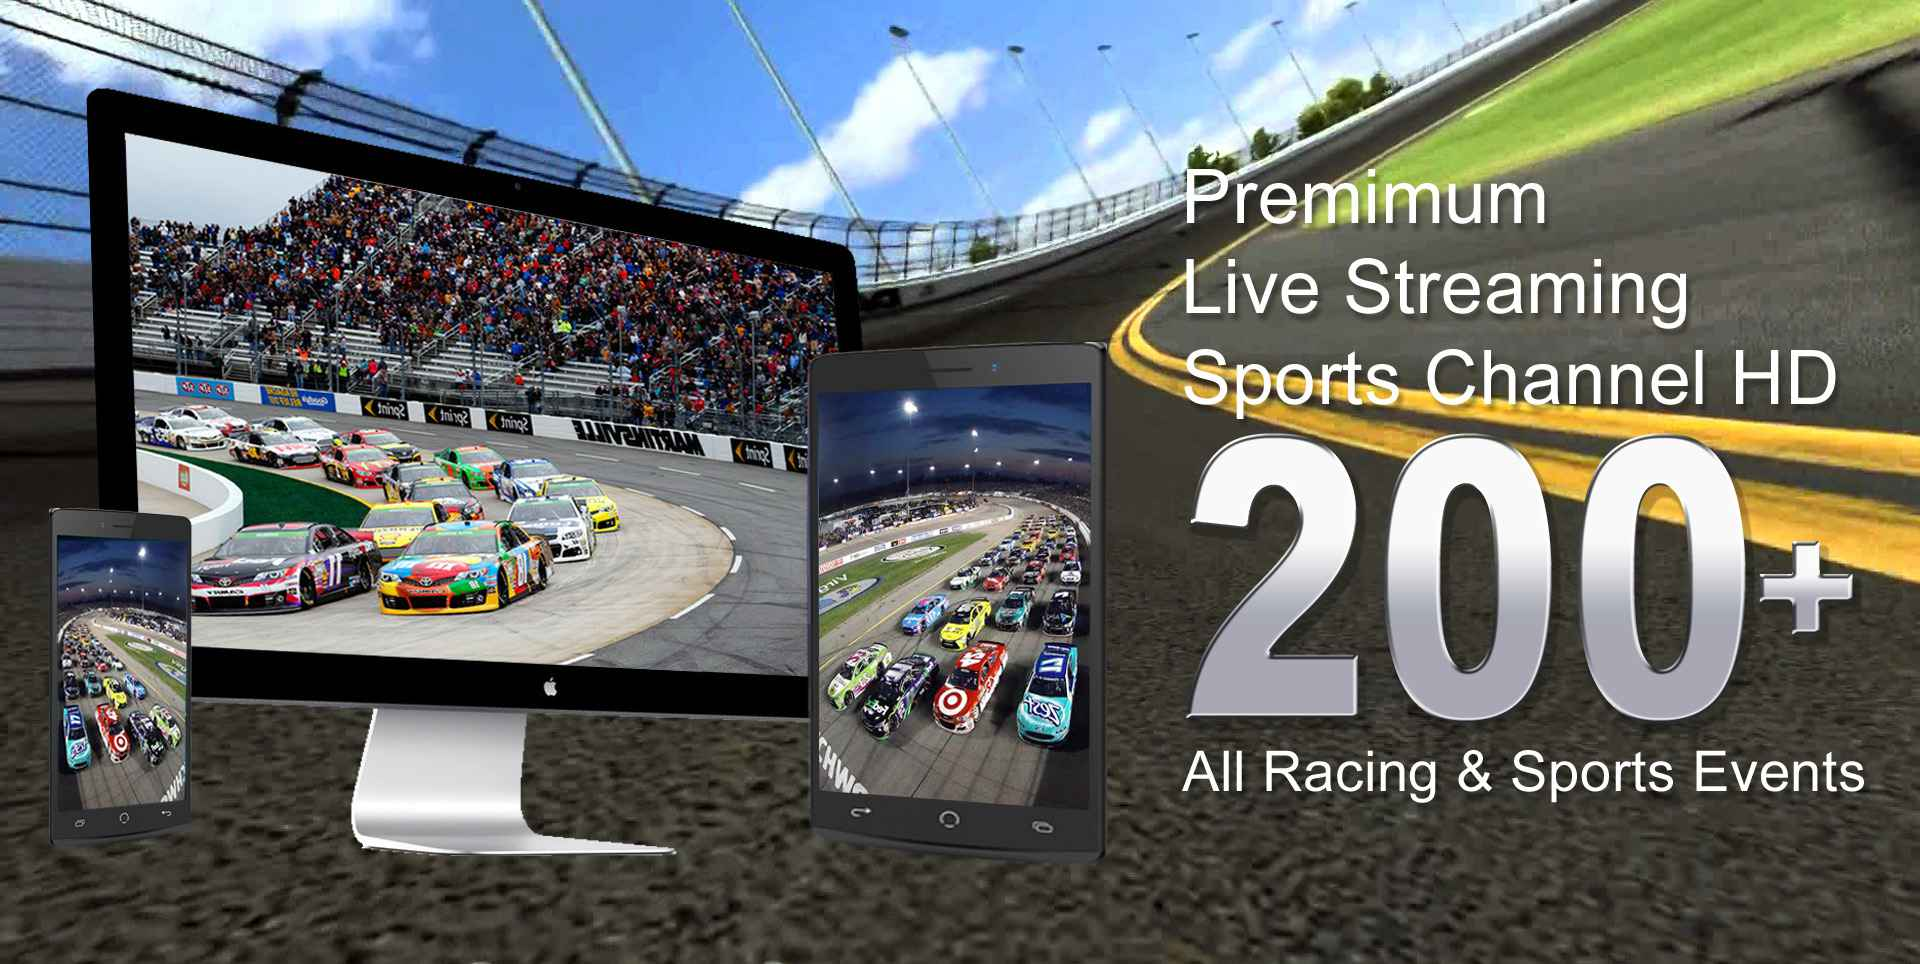 nascar%20sprint%20cup%20coca cola%20600%20at%20charlotte Live 2015 NASCAR Sprint Cup Coca Cola 600 at Charlotte Online